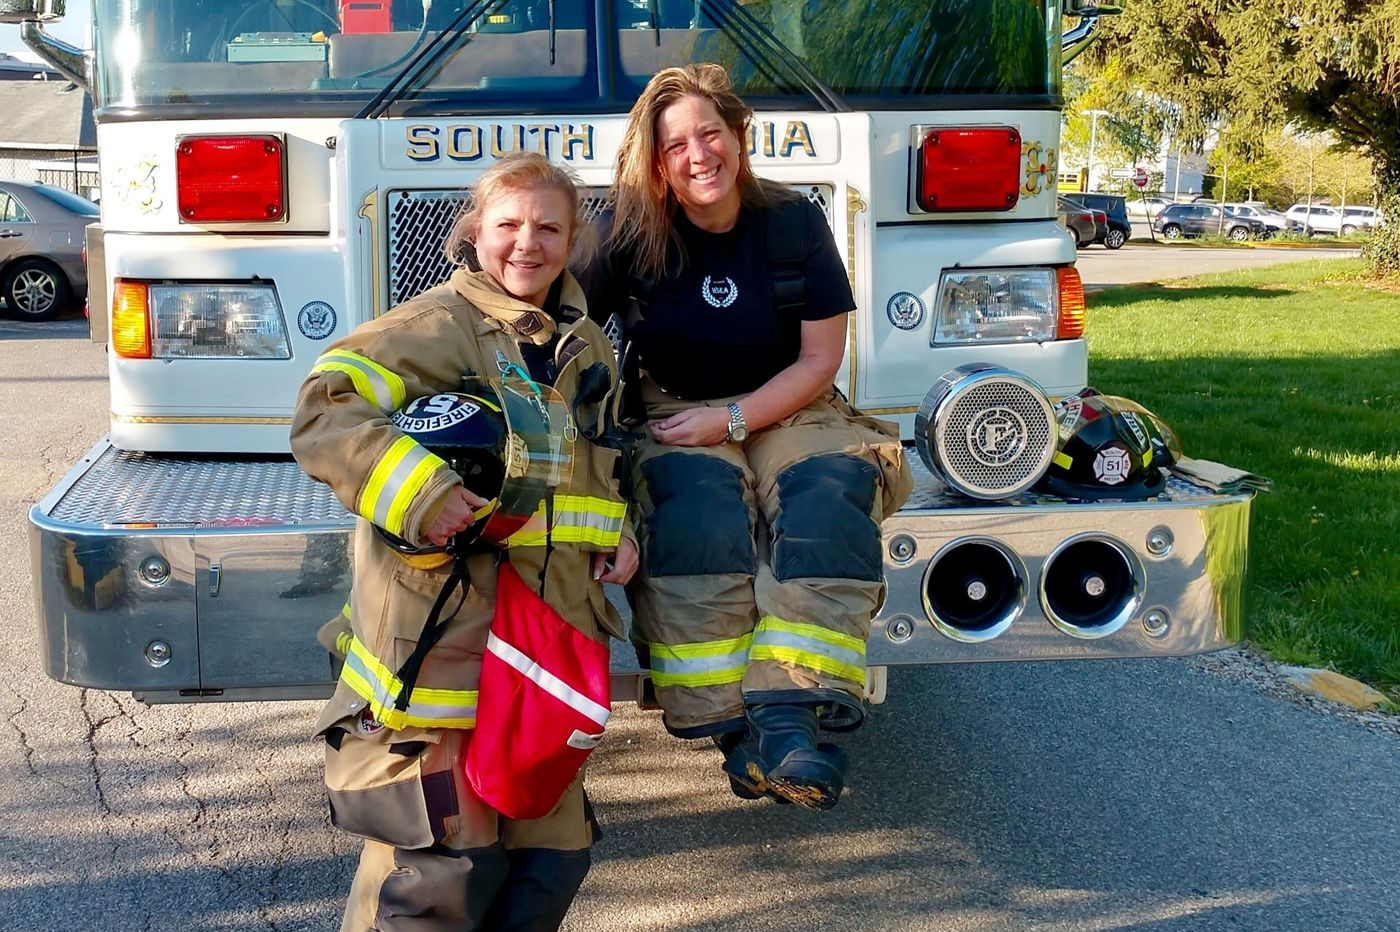 Delco women firefighters make history on a Pa. middle school emergency call | Maria Panaritis